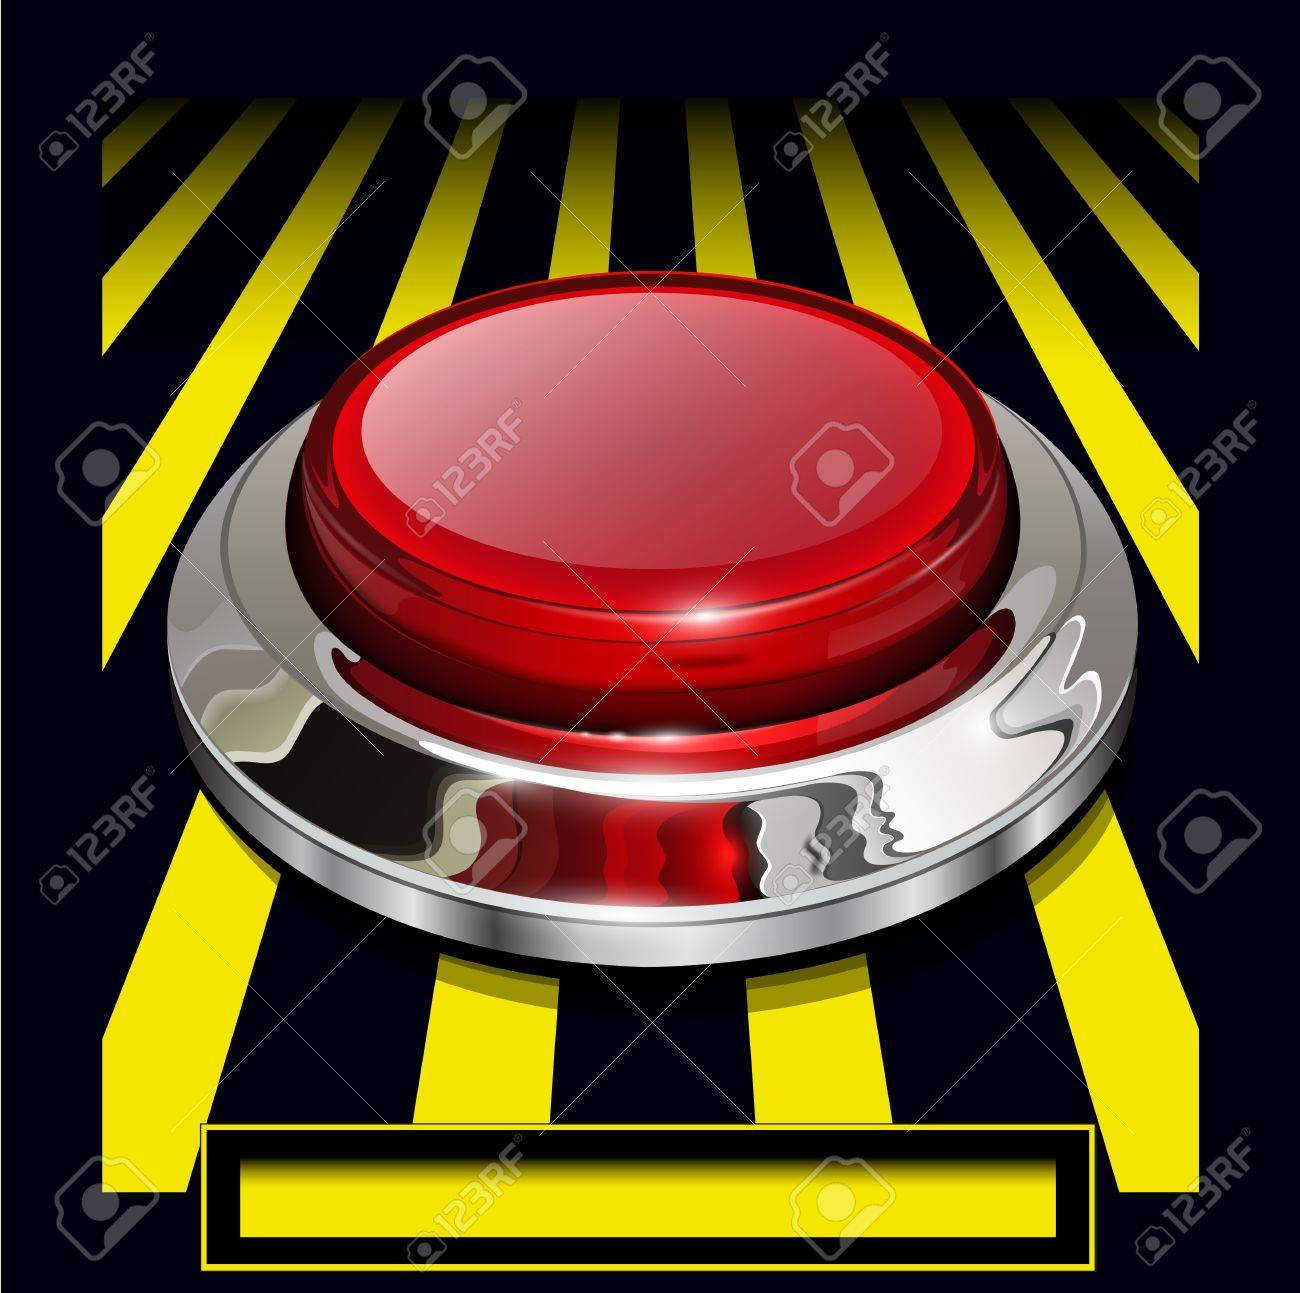 Red alarm chrome shiny button background Stock Vector - 14771665